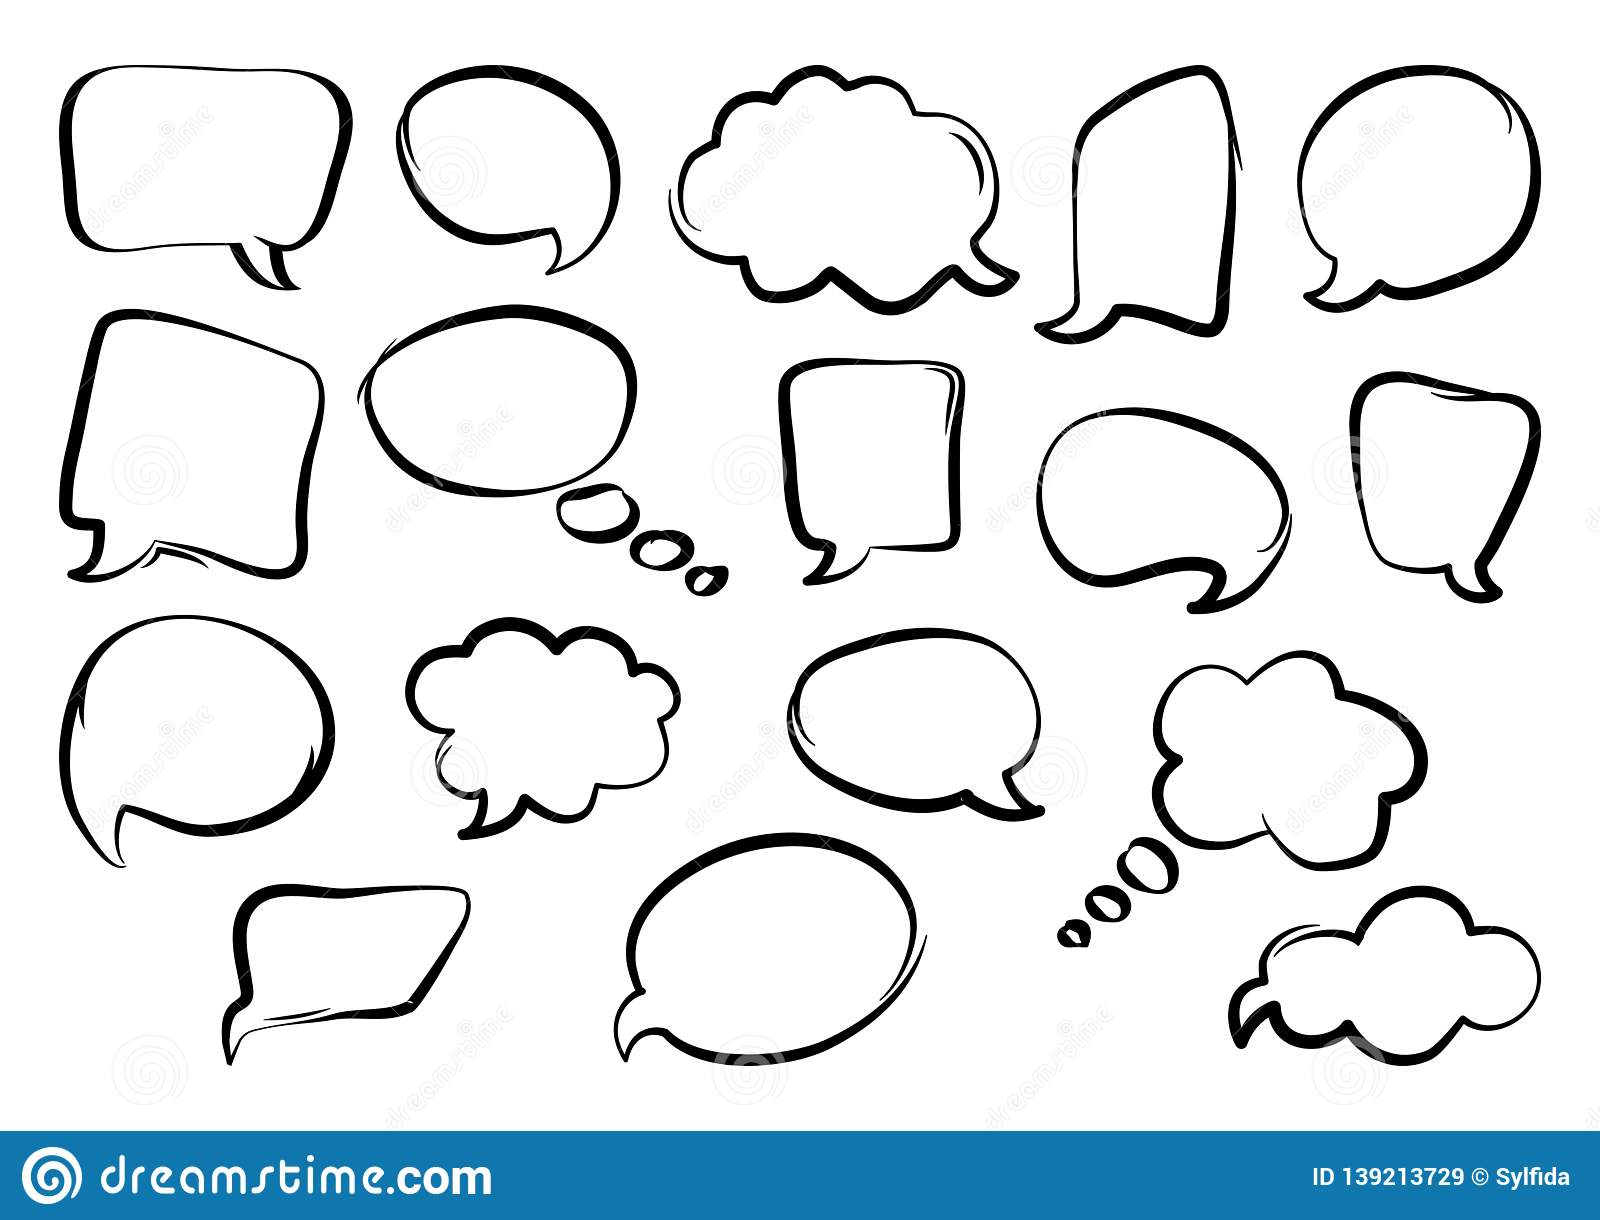 Set of speech bubbles, hand drawn. Vector illustration